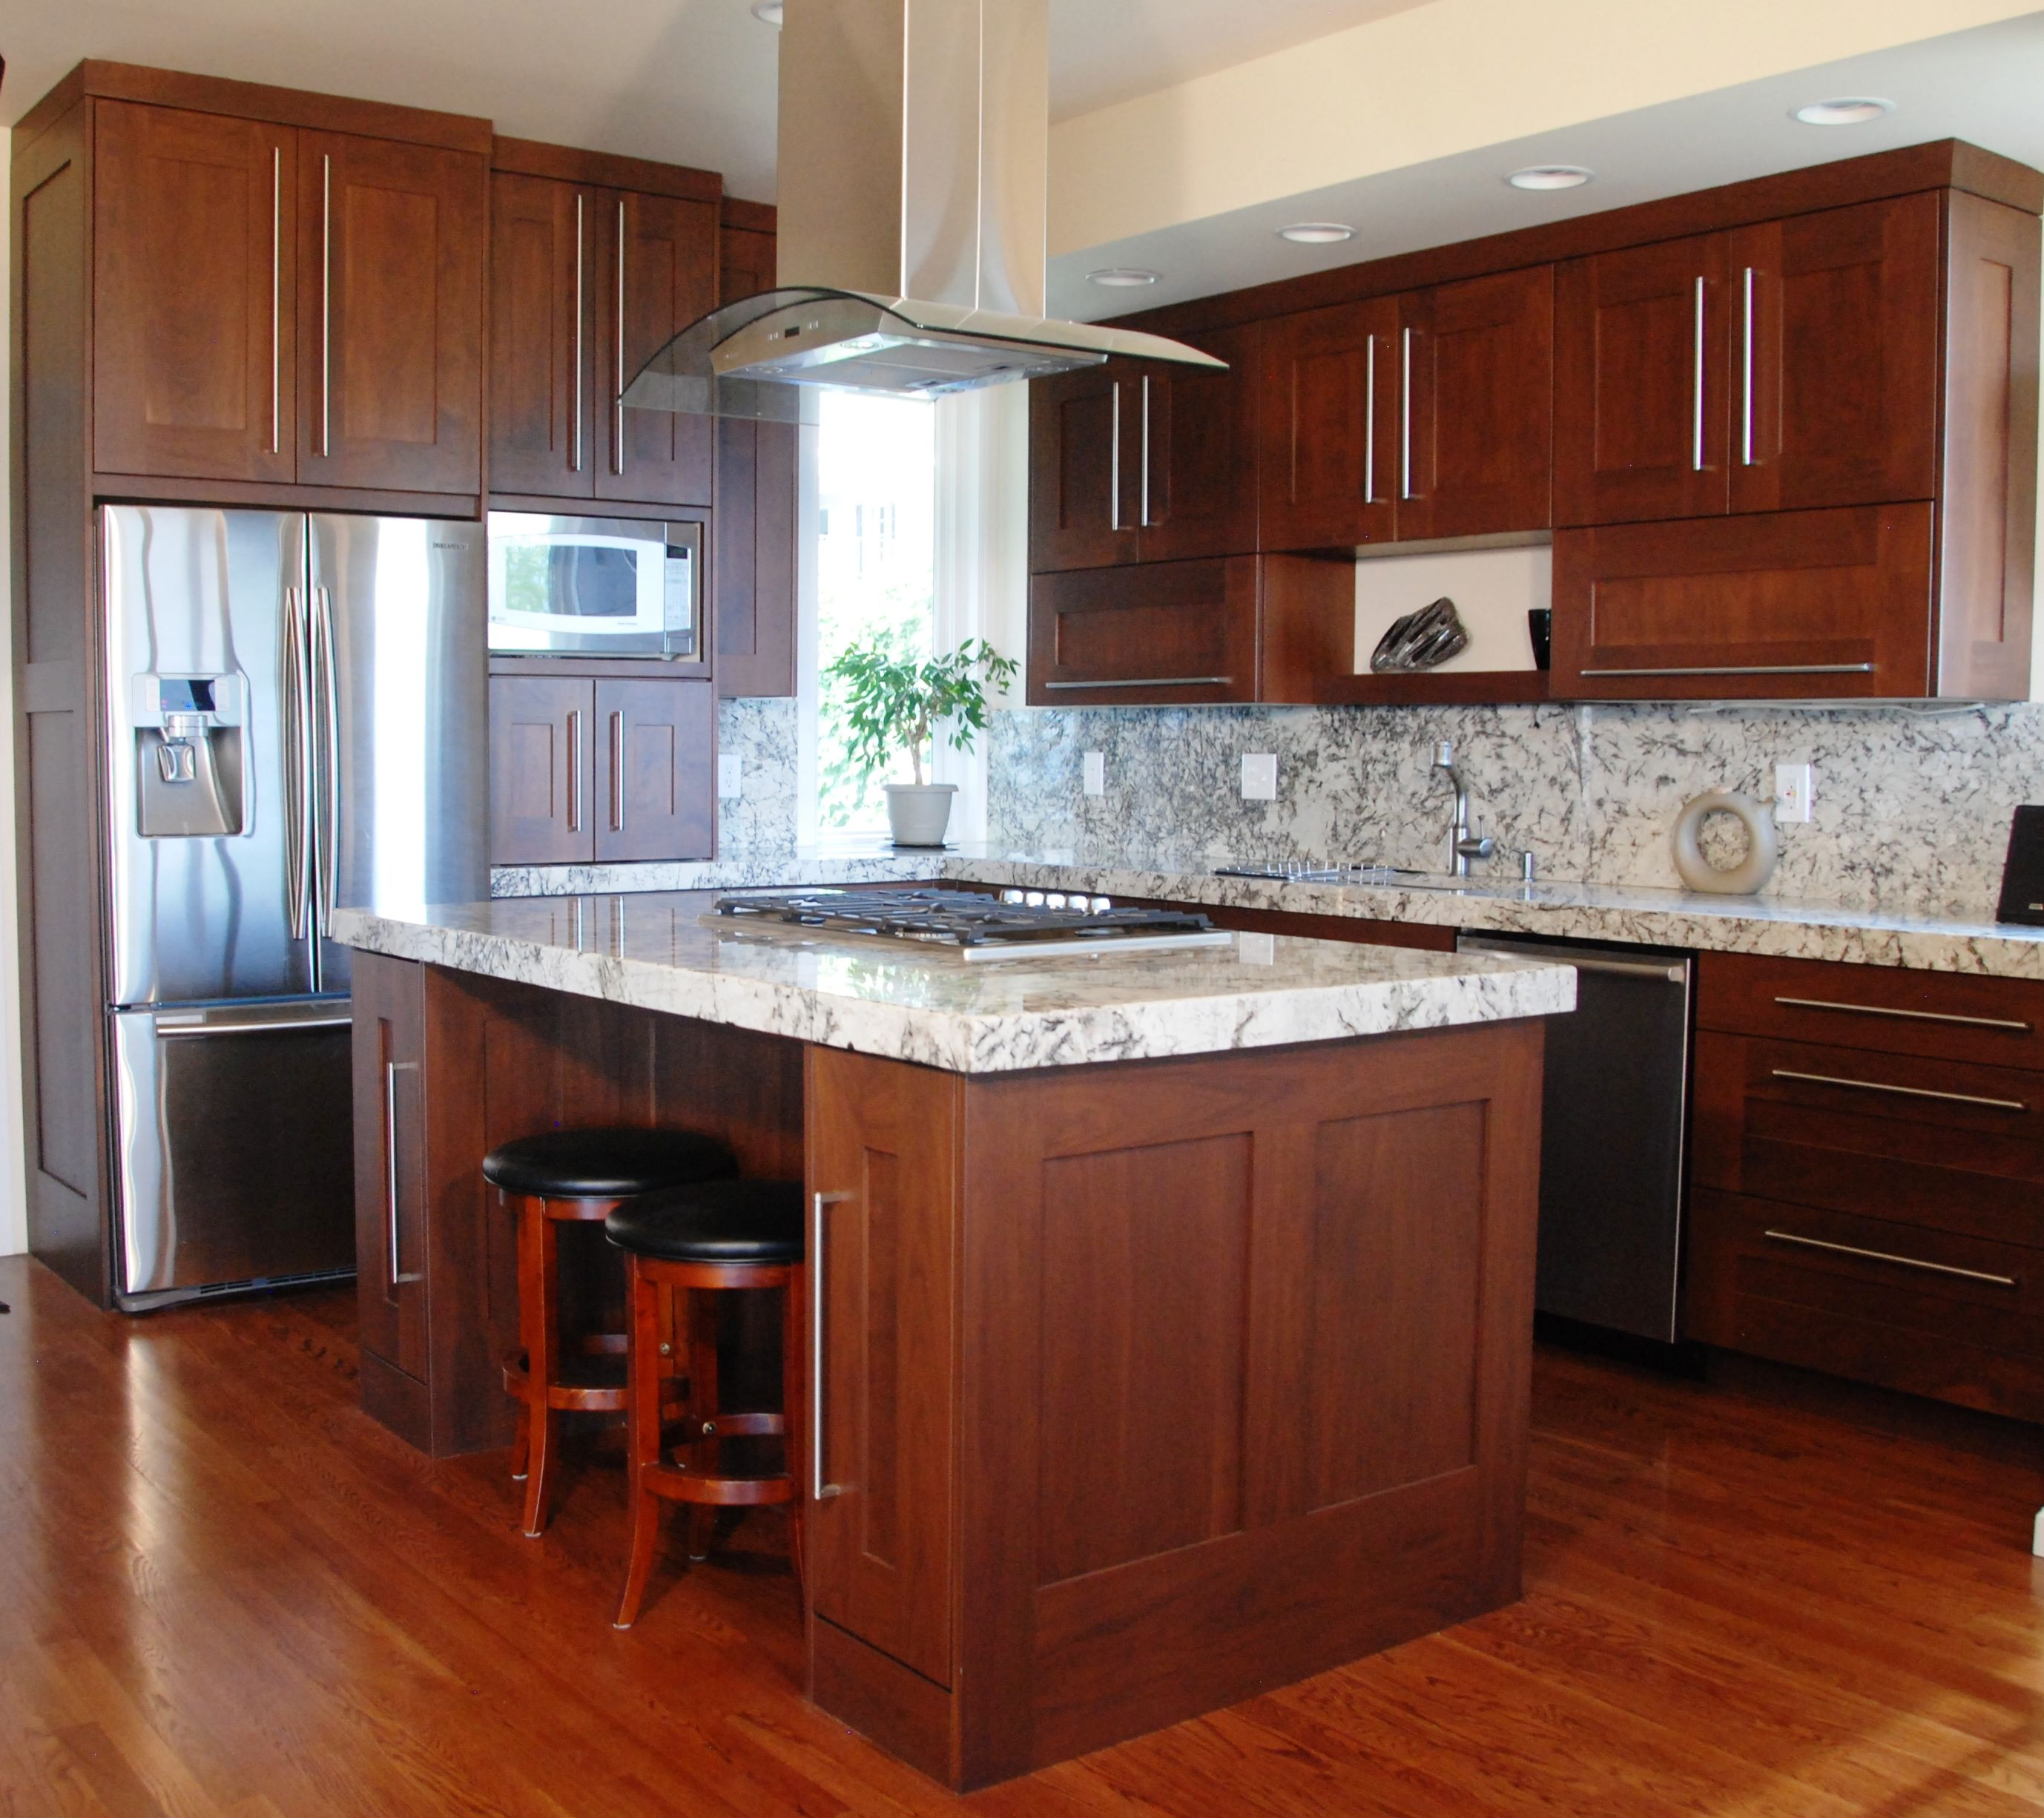 In modern kitchen designs, white or gray painted Shaker